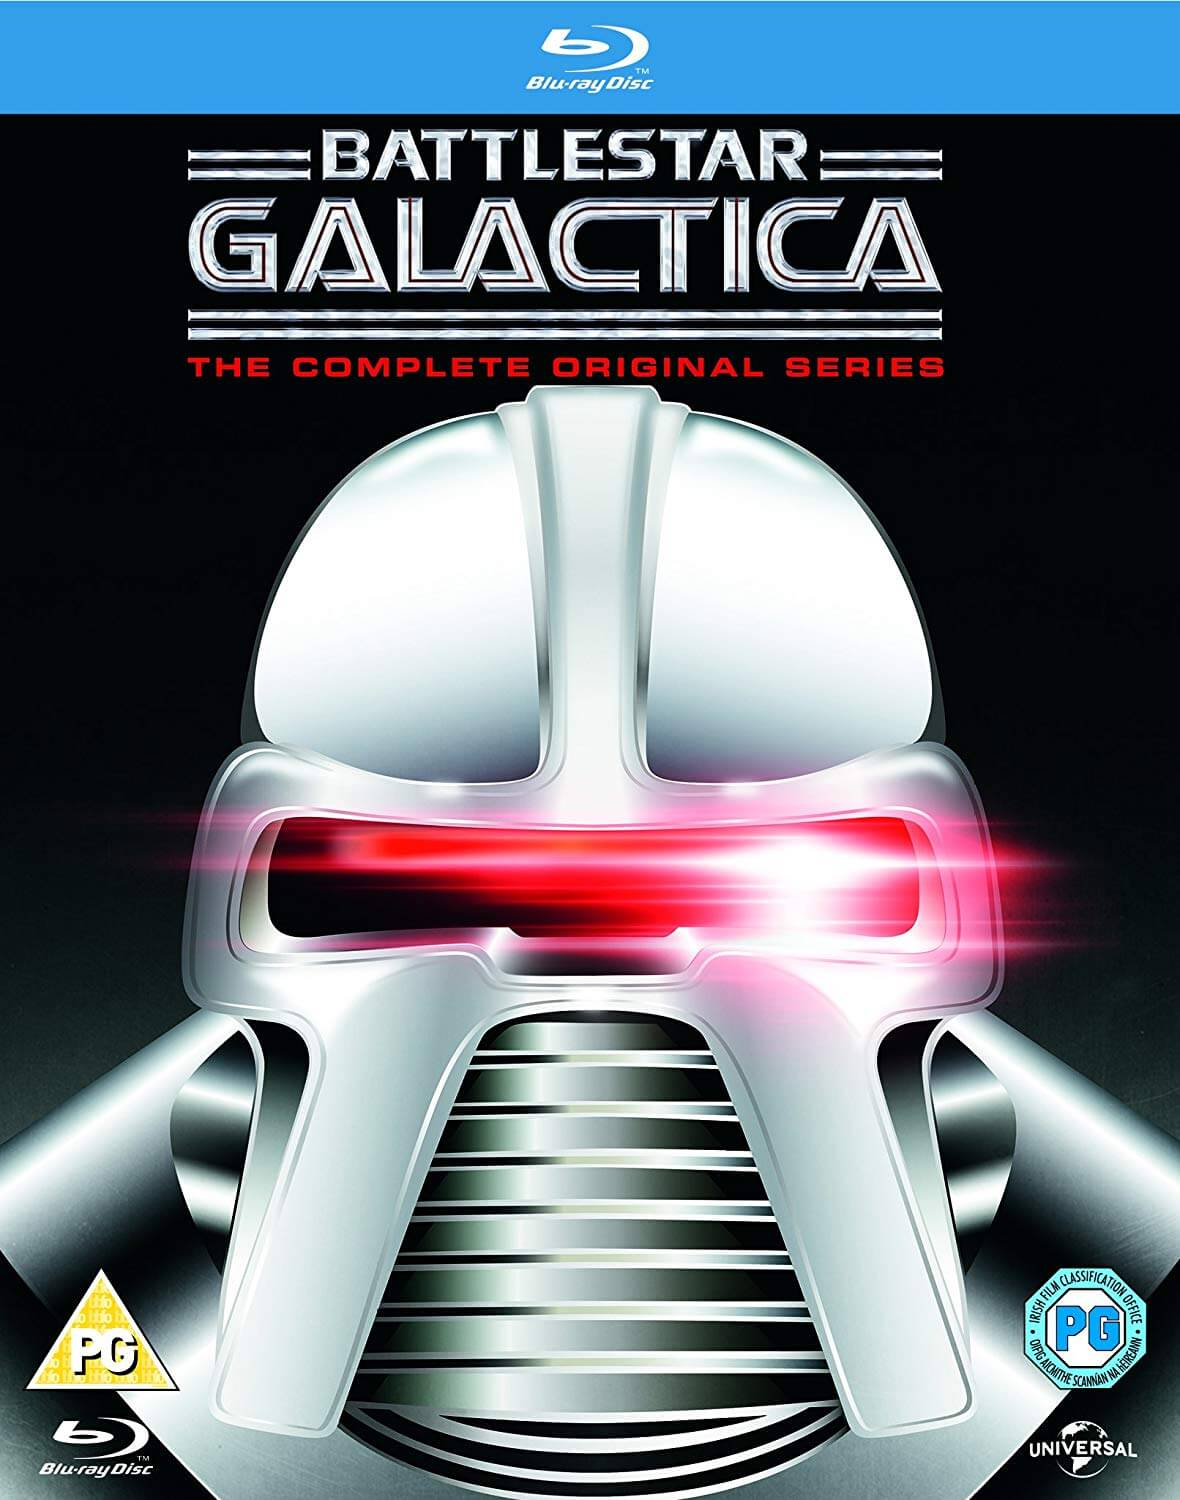 Battlestar Galactica – The Complete Original Series [Blu-ray] [Region Free]